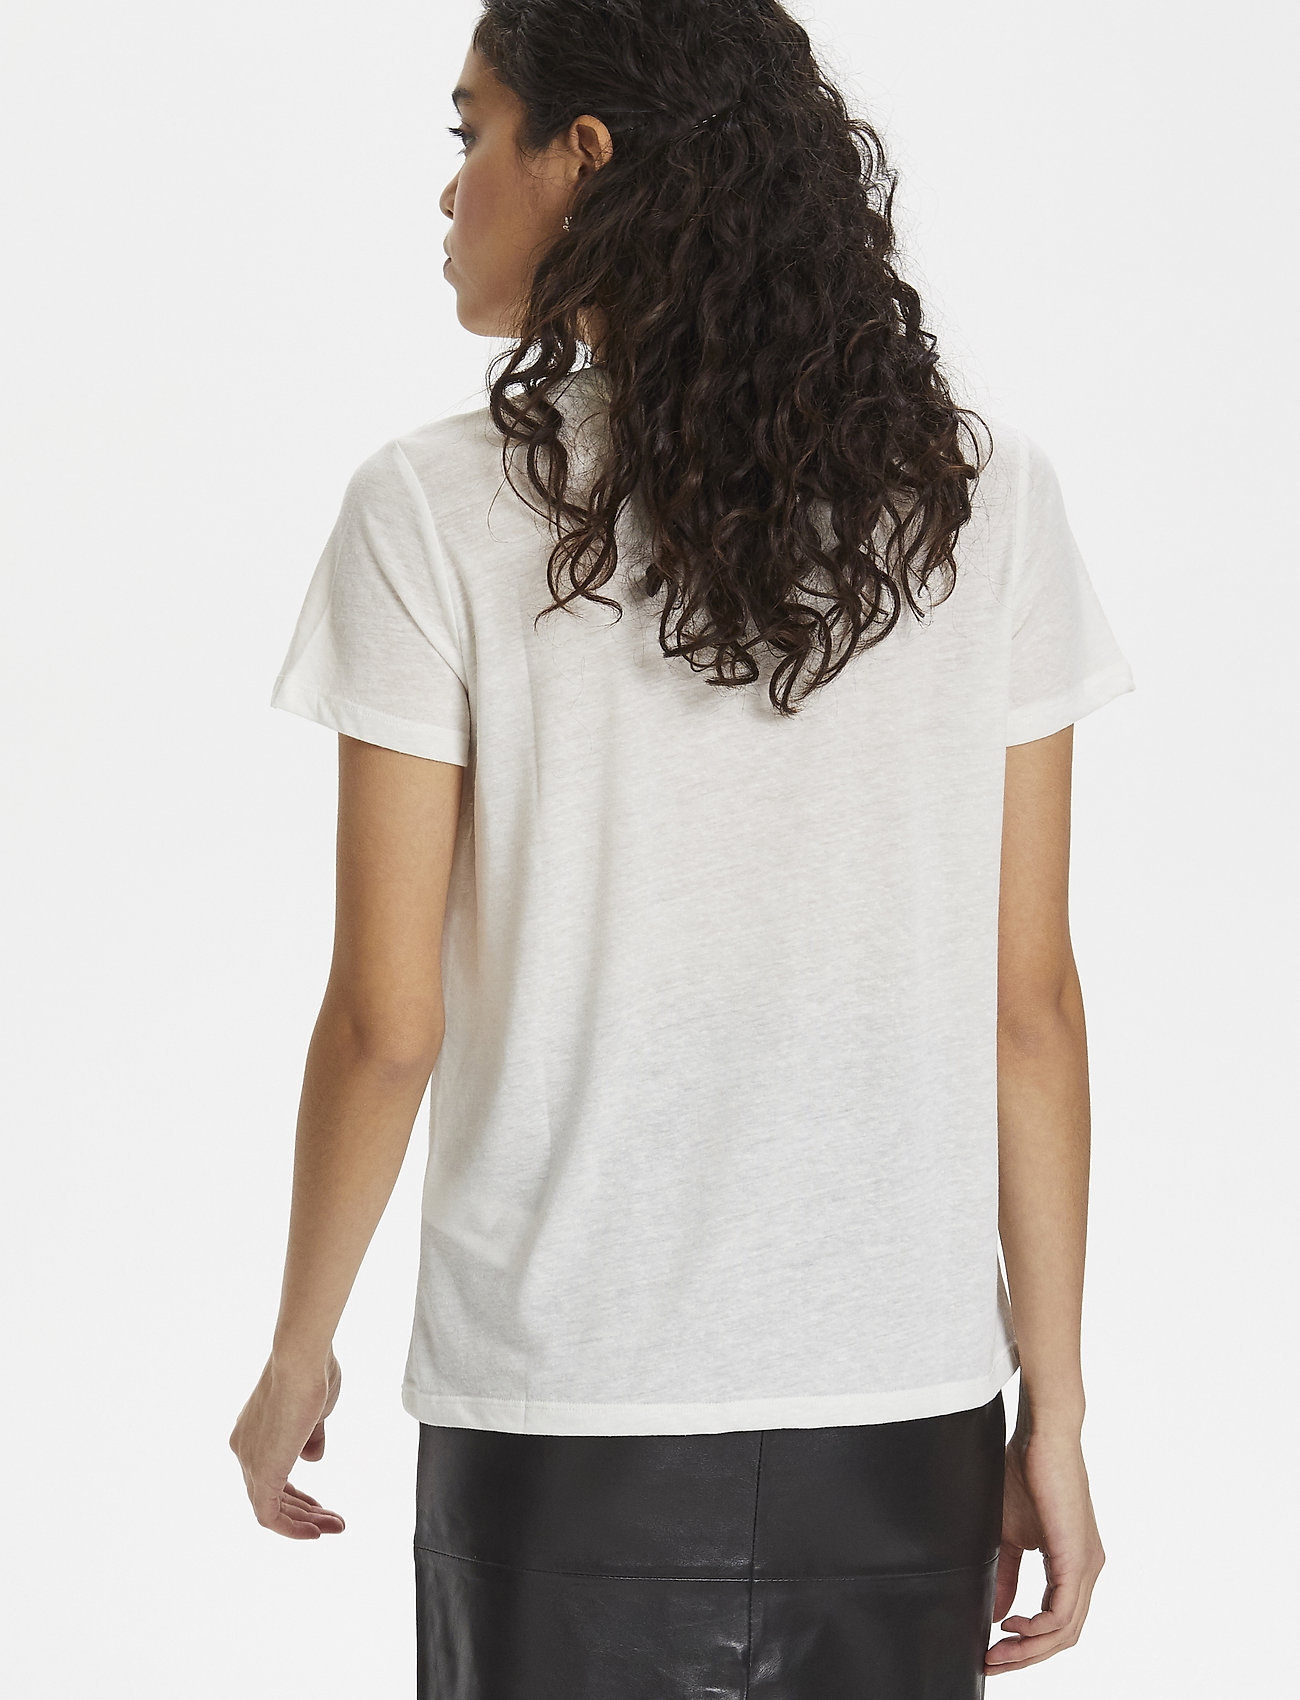 Soaked in Luxury SL Janet Tee - T-shirts & Tops BROKEN WHITE W CREME NIPS